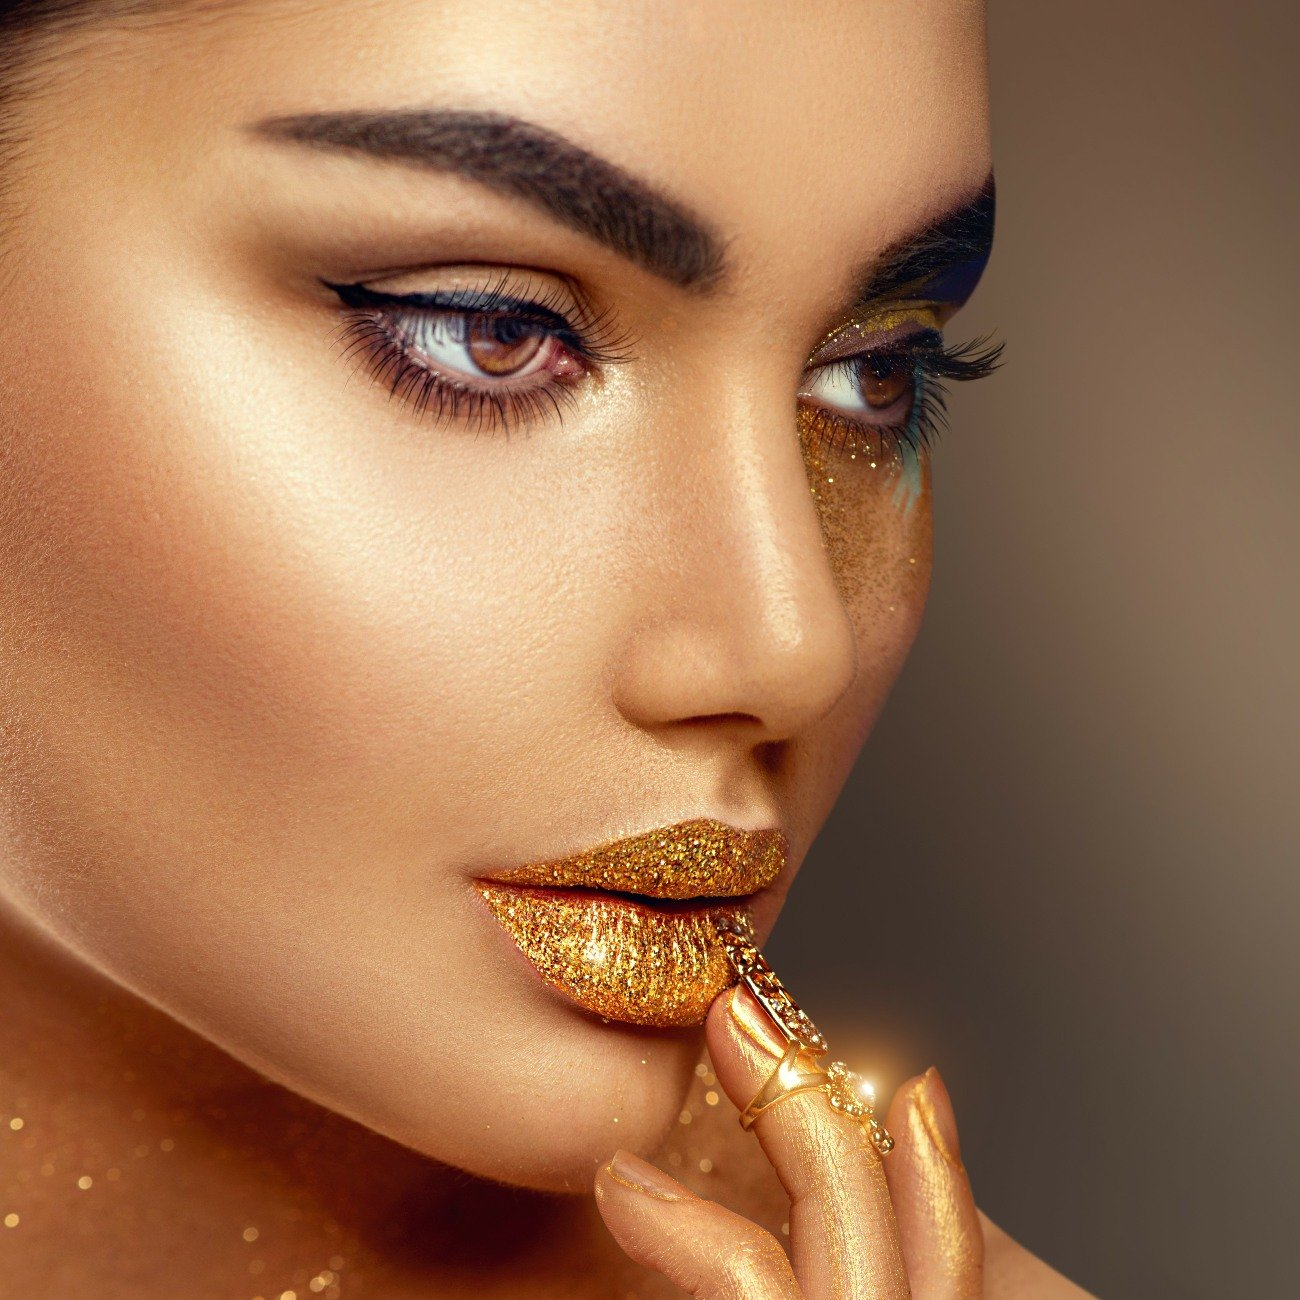 GOLDEN SHIMMER HOLOGRAPHIC FACE AND BODY GLITTER [ Great for Parties, Festivals, Raves, Celebrations, Concerts ] Easy Application No Waste or Mess - Vegan and Cruelty Free - Made in the USA by Black Bamboo (Image #4)